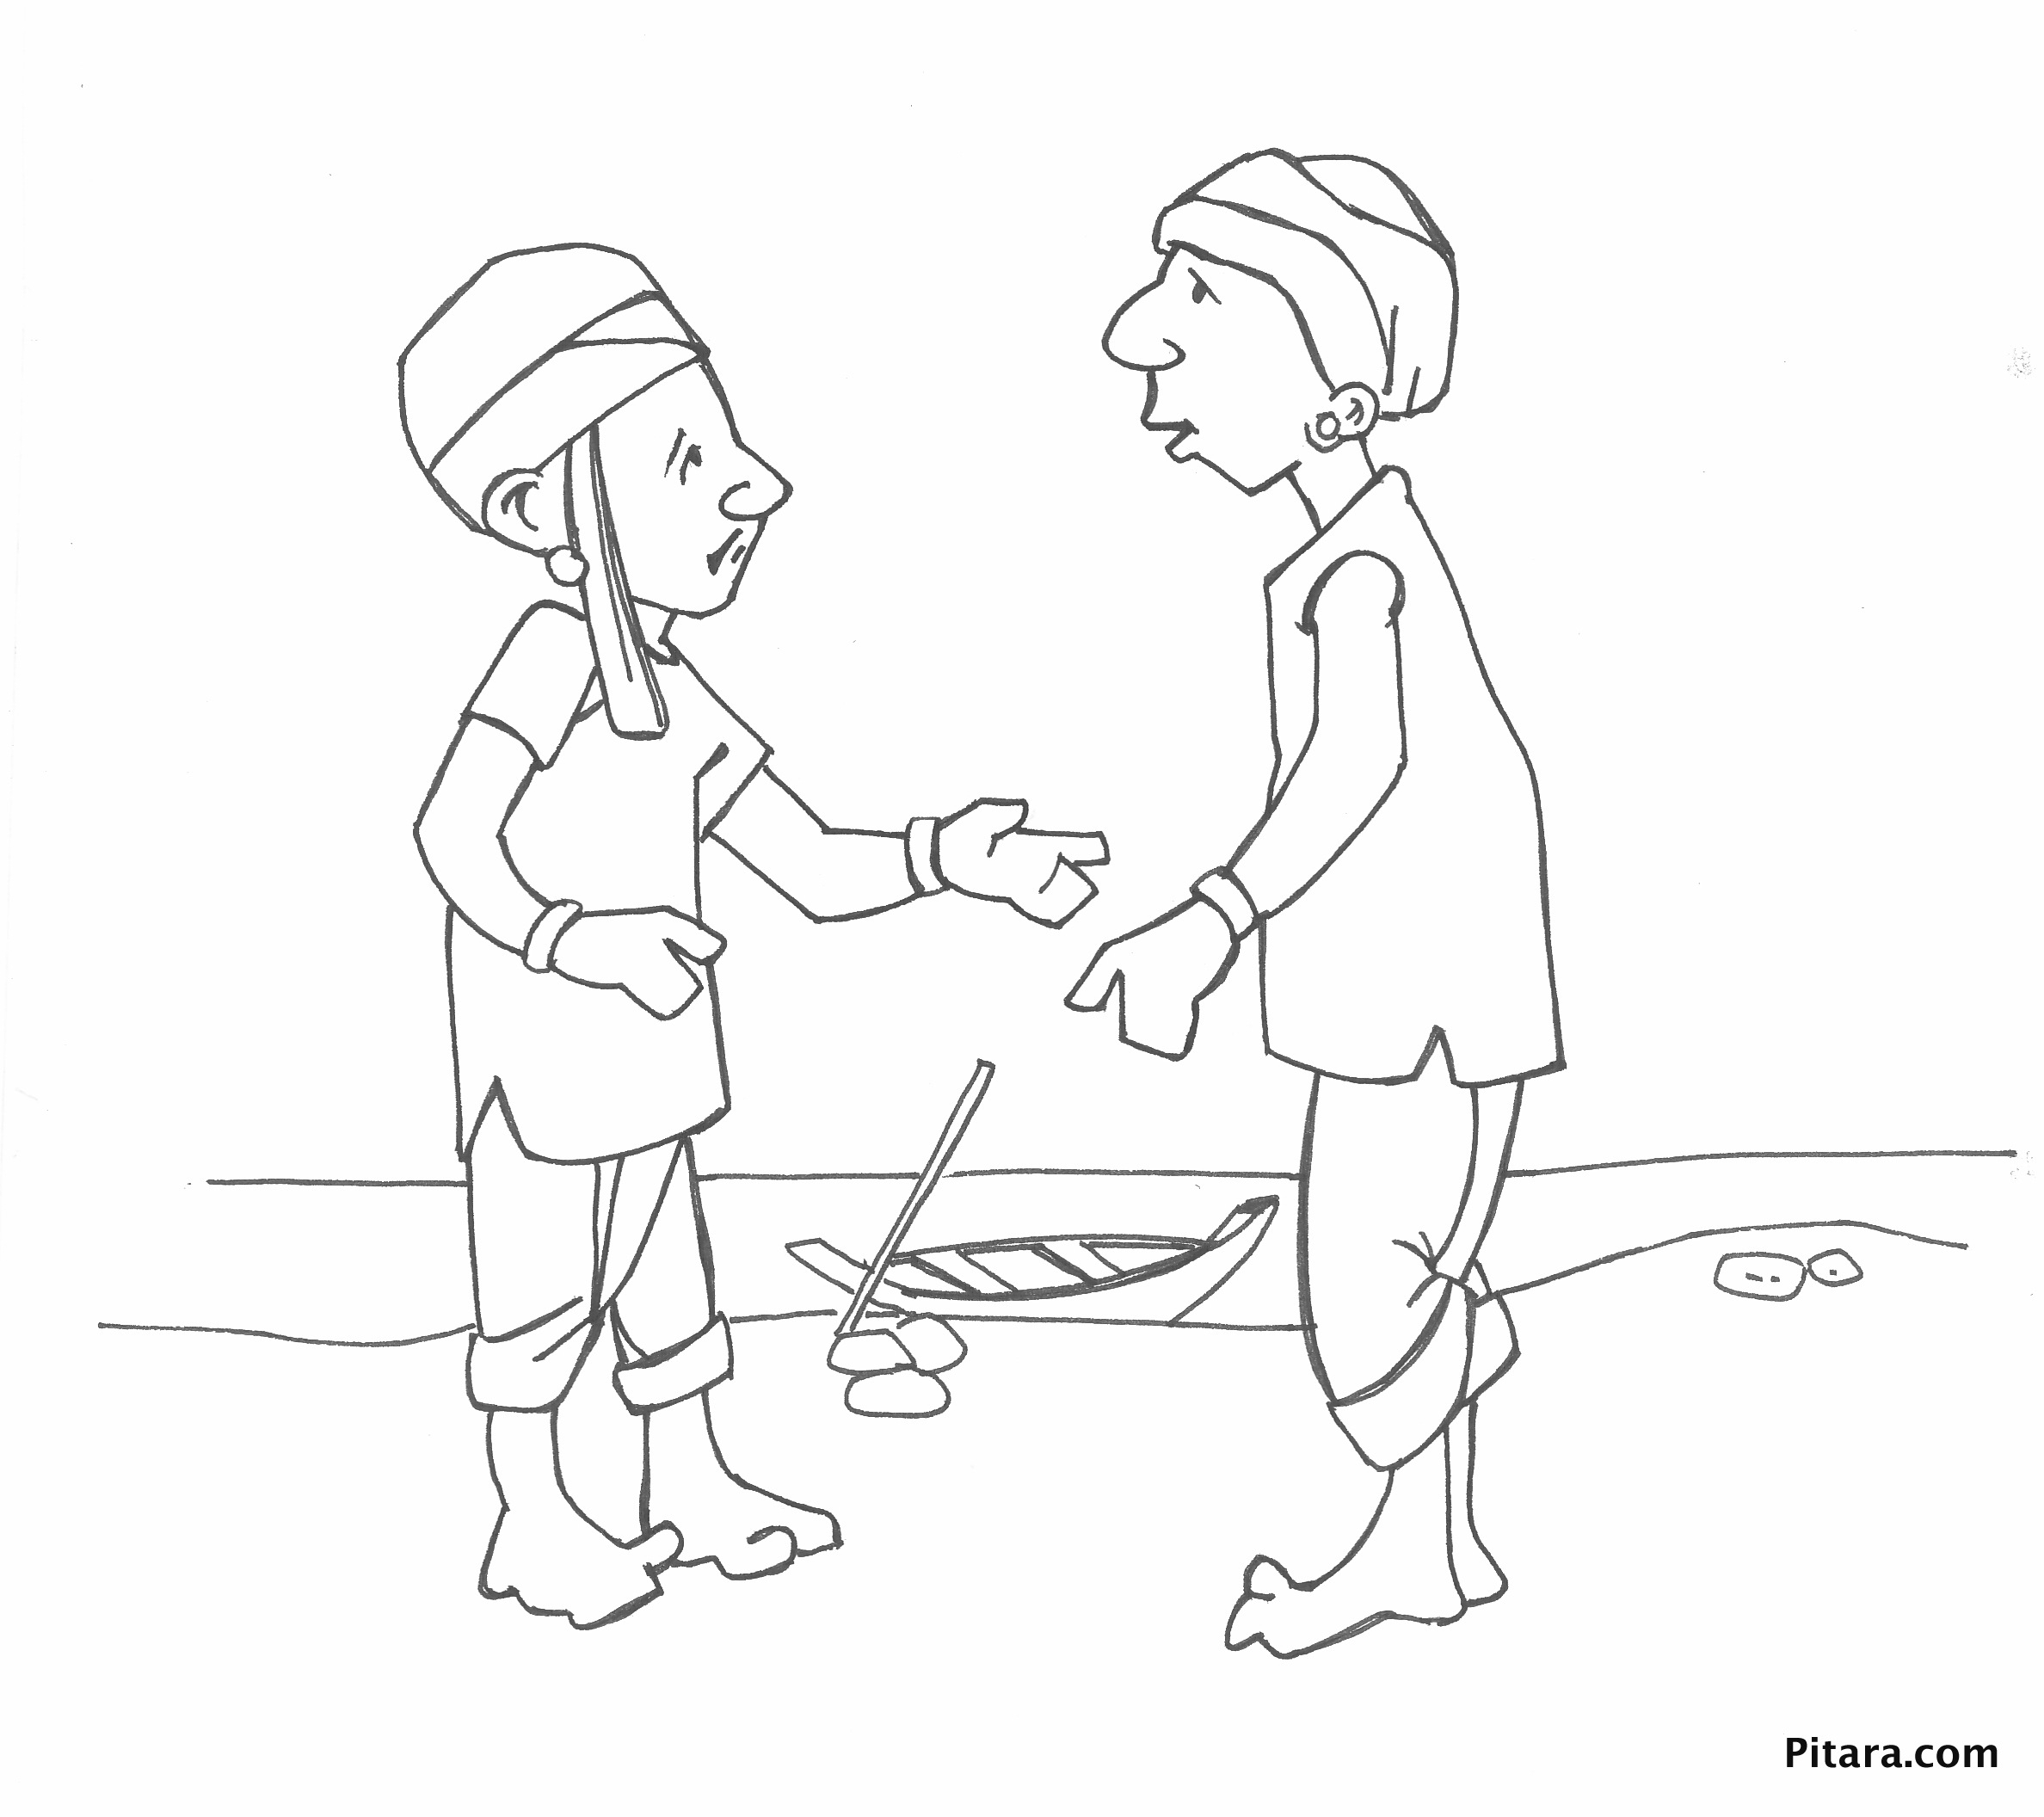 Sketch Of A Village Man Indian Village People Coloring Pages ...